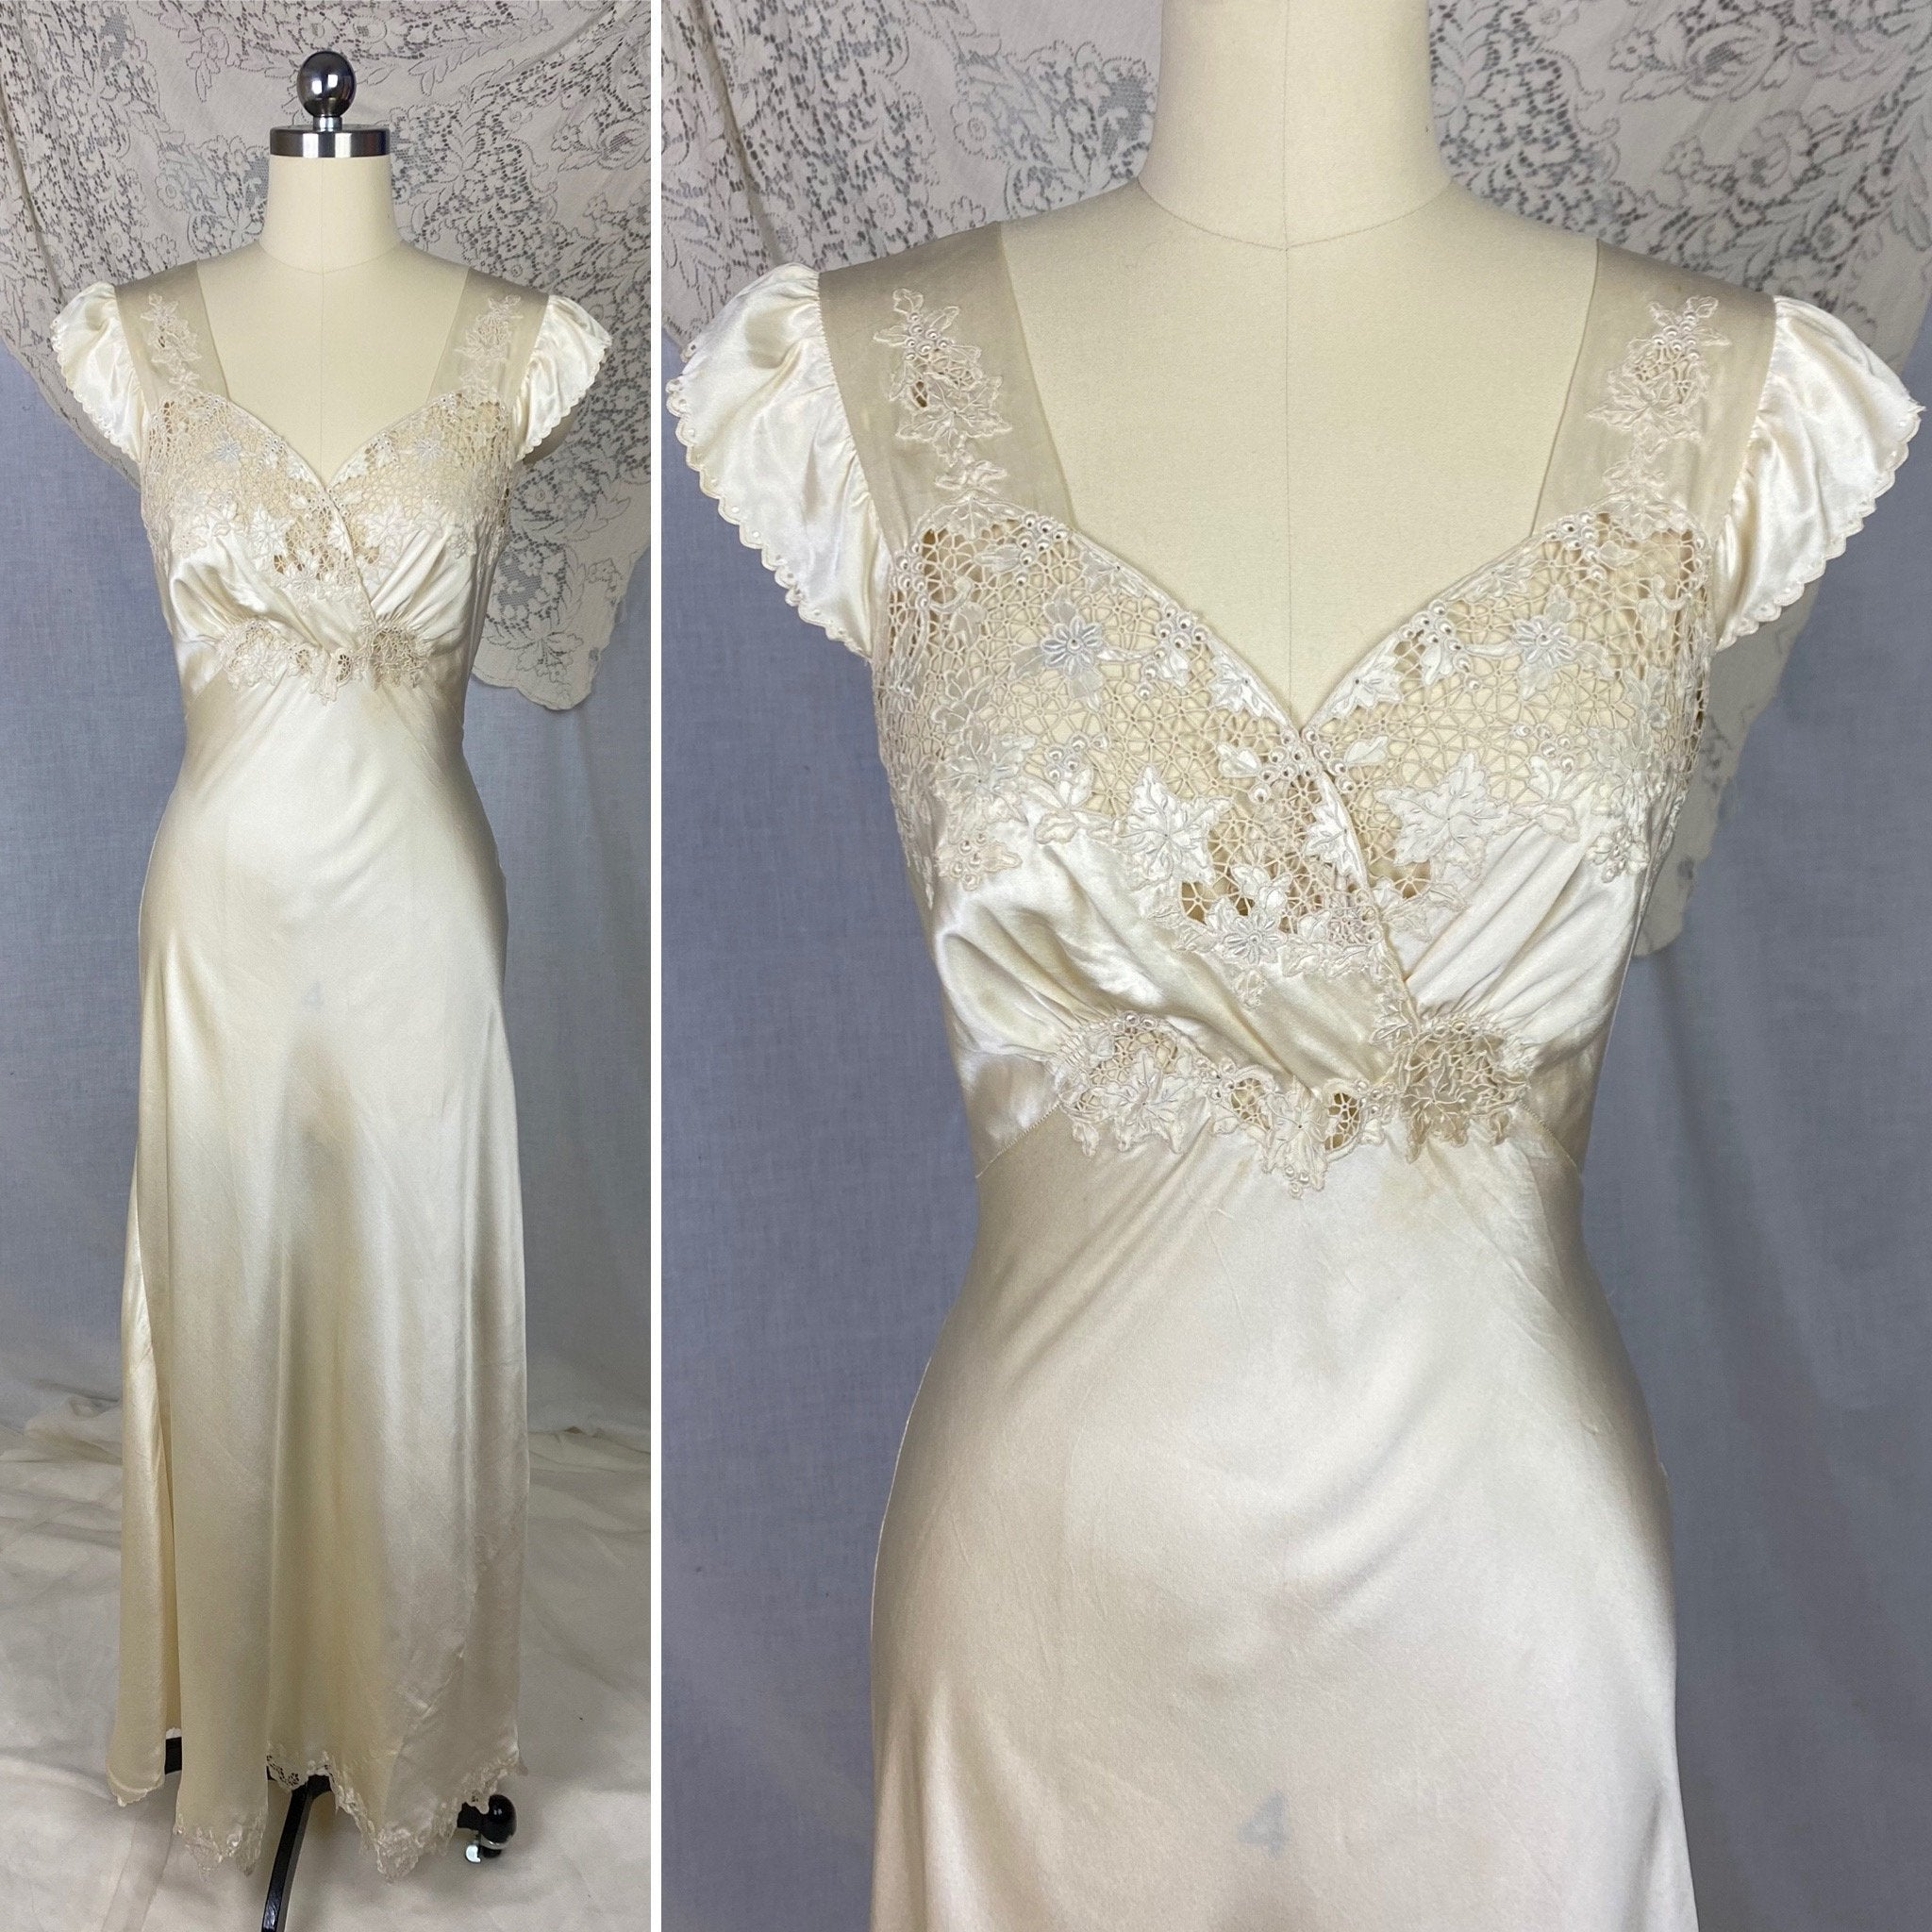 Vintage 1940's Nightgown | Hand Stitched Warm Ivory Silk Charmeuse with Floral Appliqué & Spiderweb Lace | Size 34-36 Bust, S | OOAK - Daggers & Dames